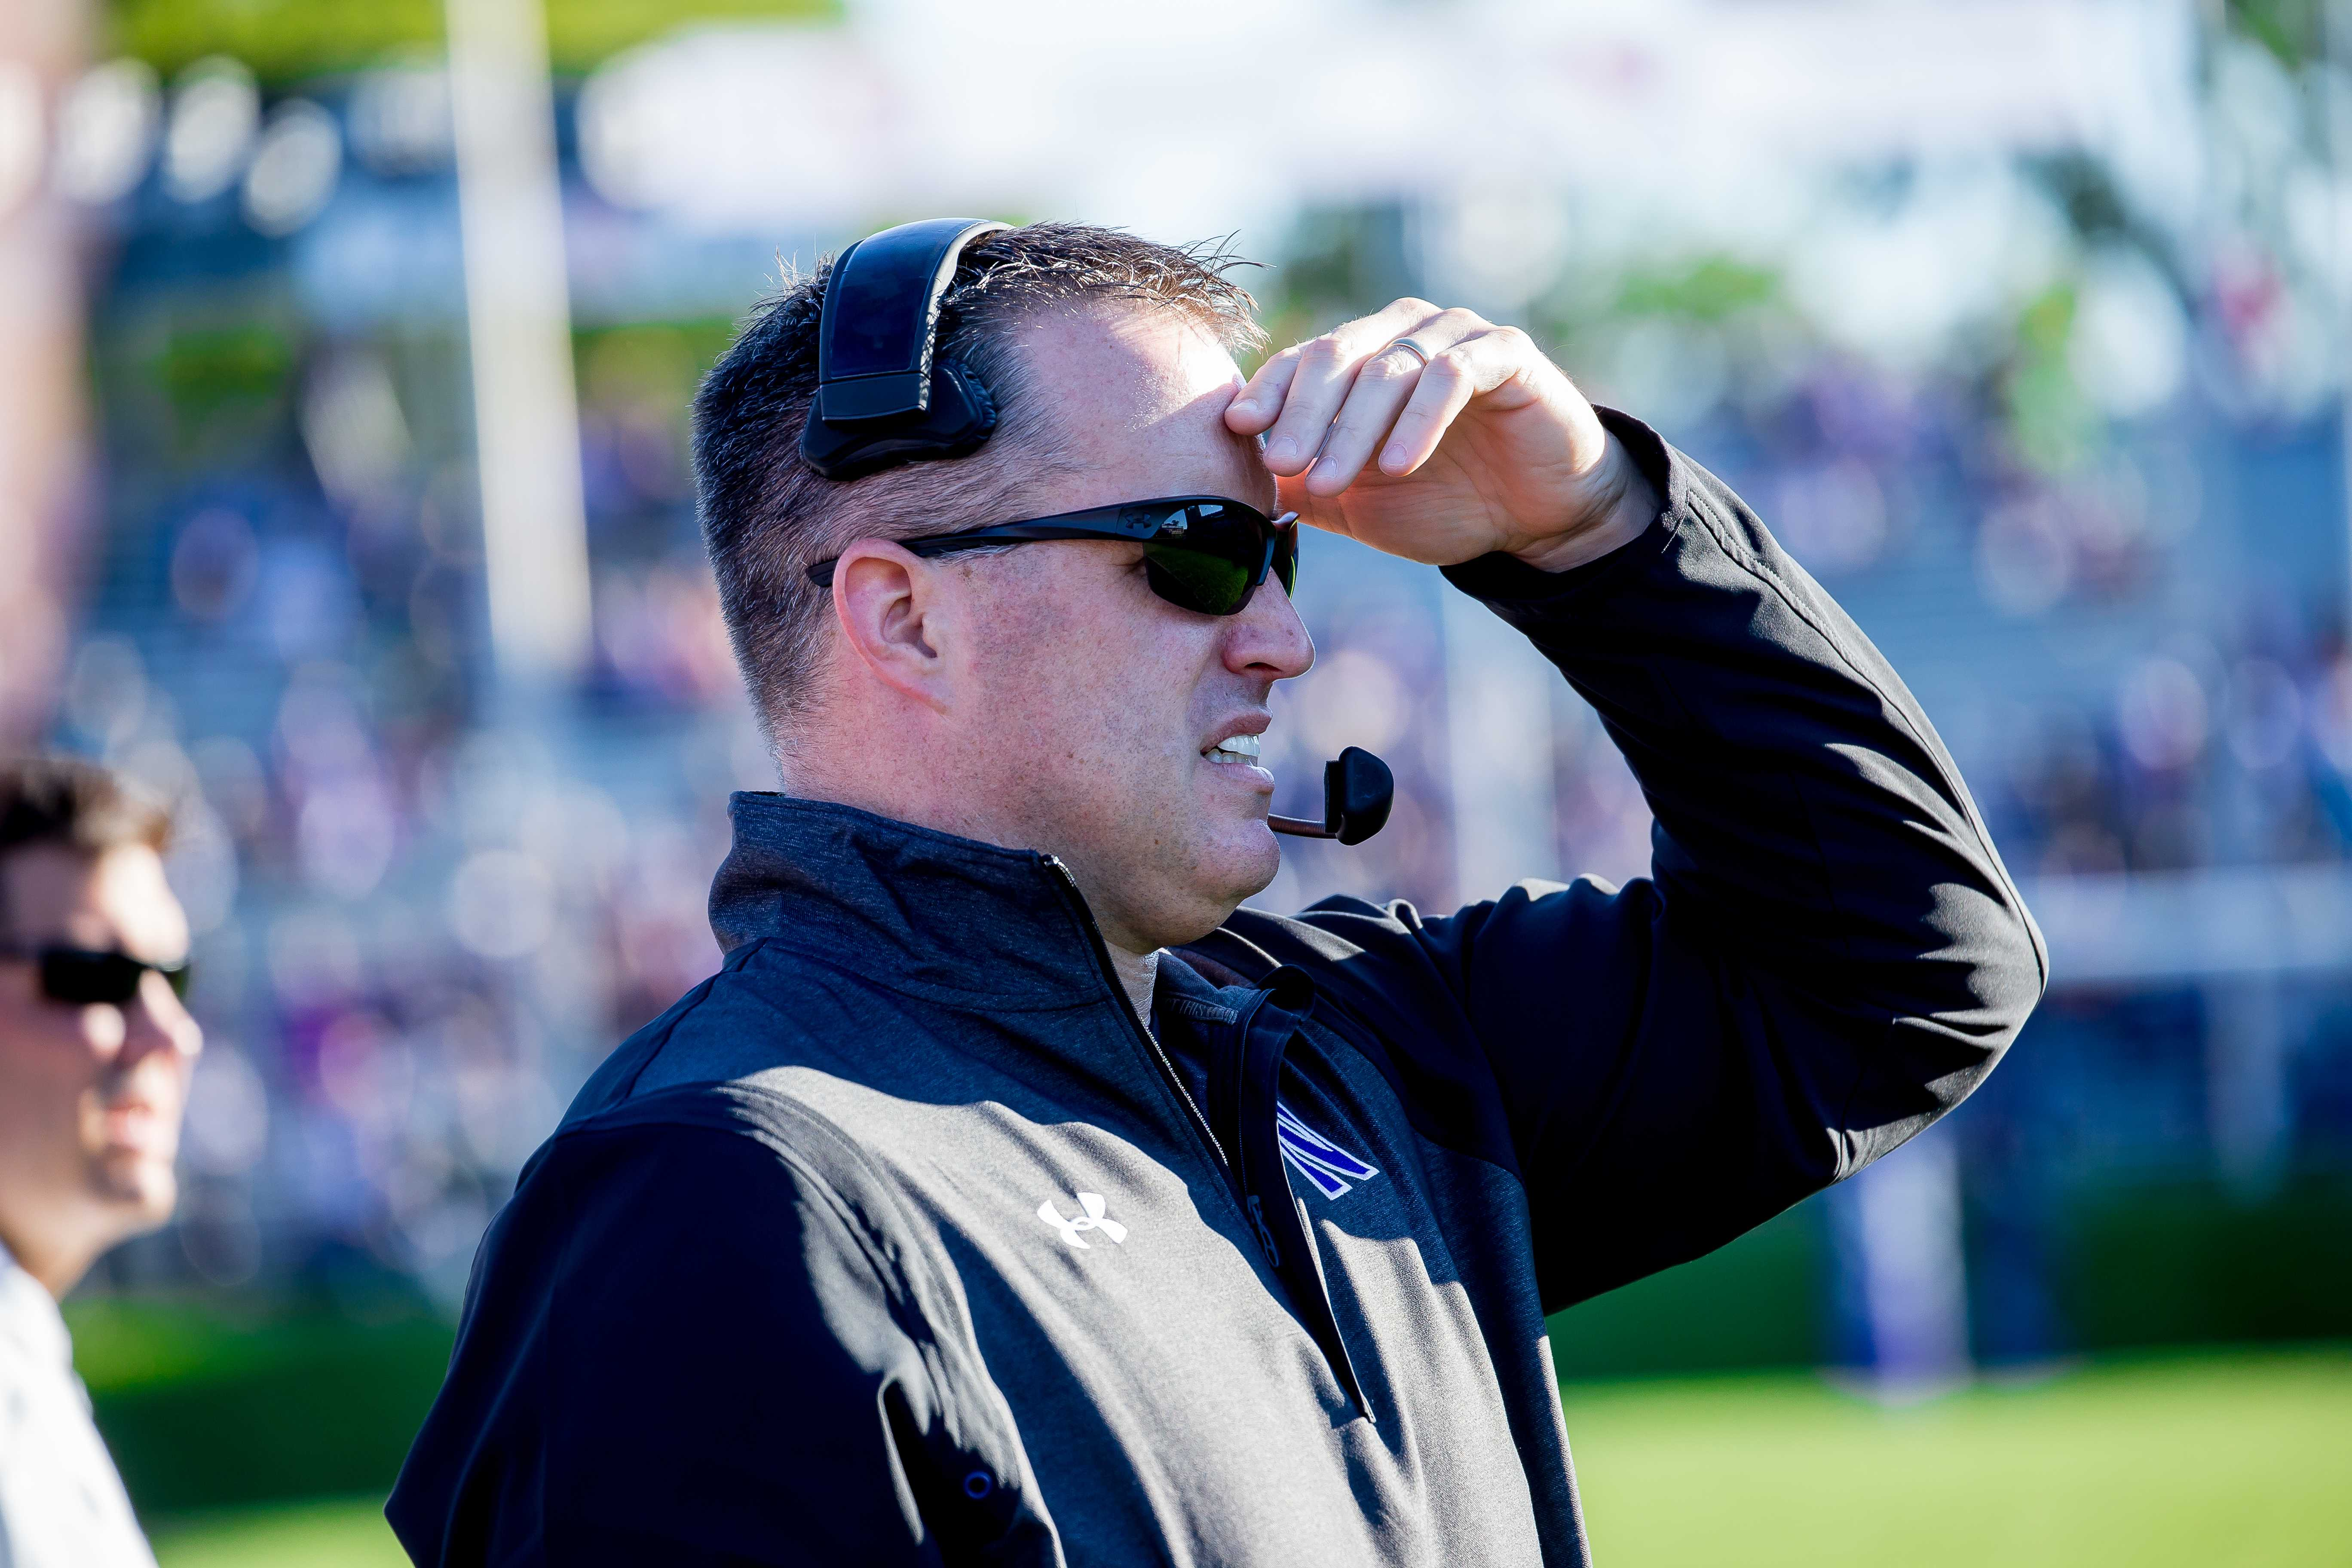 Northwestern coach Pat Fitzgerald surveys the field during Northwestern's 41-0 win over Eastern Illinois on Saturday. The dominant win pushed the Wildcats into the top 25 in both national polls.